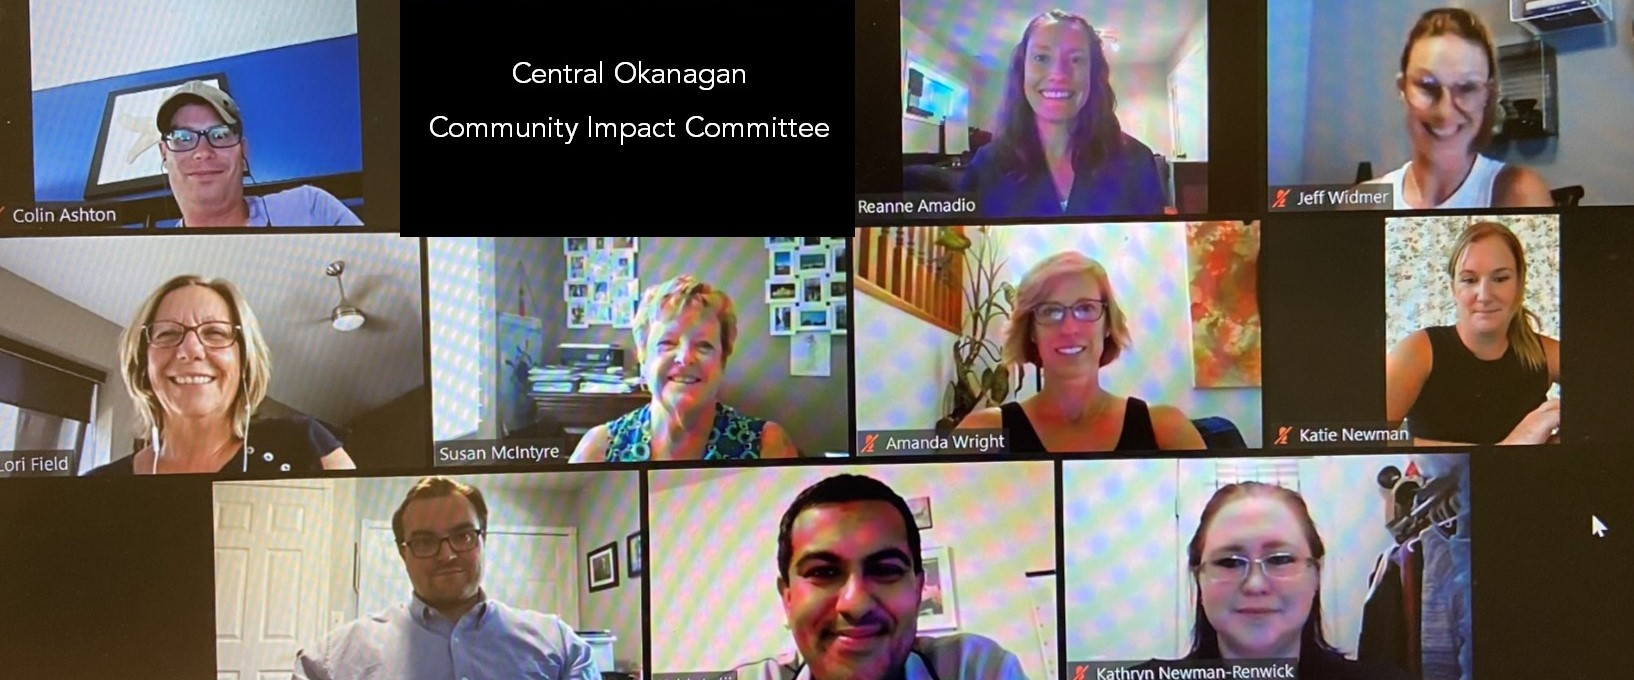 Screenshot of a Zoom meeting of the Central Okanagan Community Impact Committee